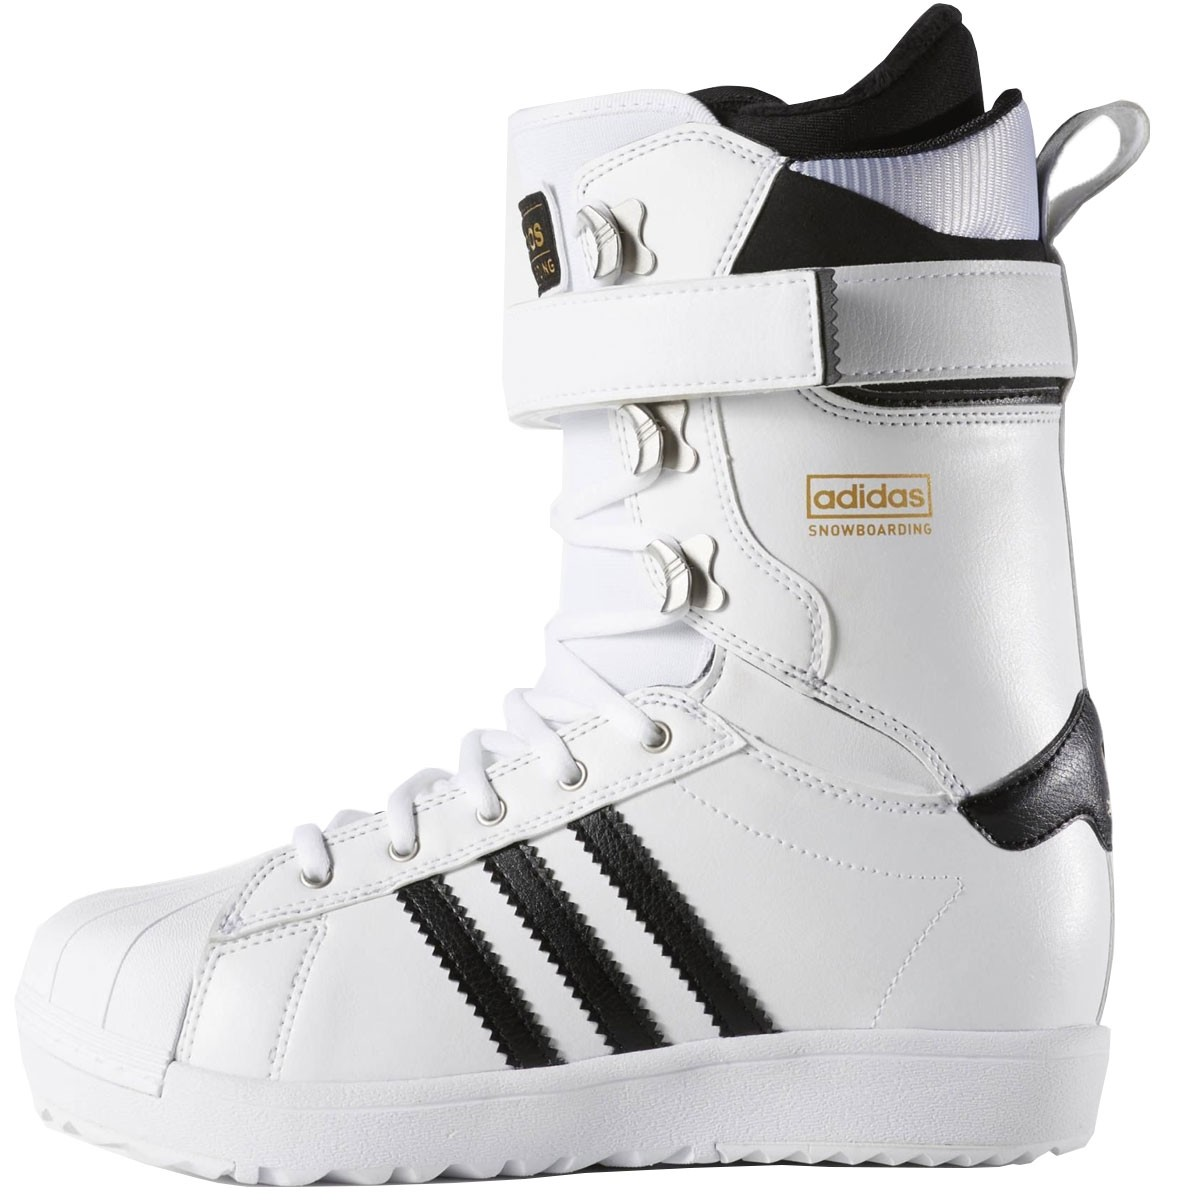 Adidas Superstar White Boots